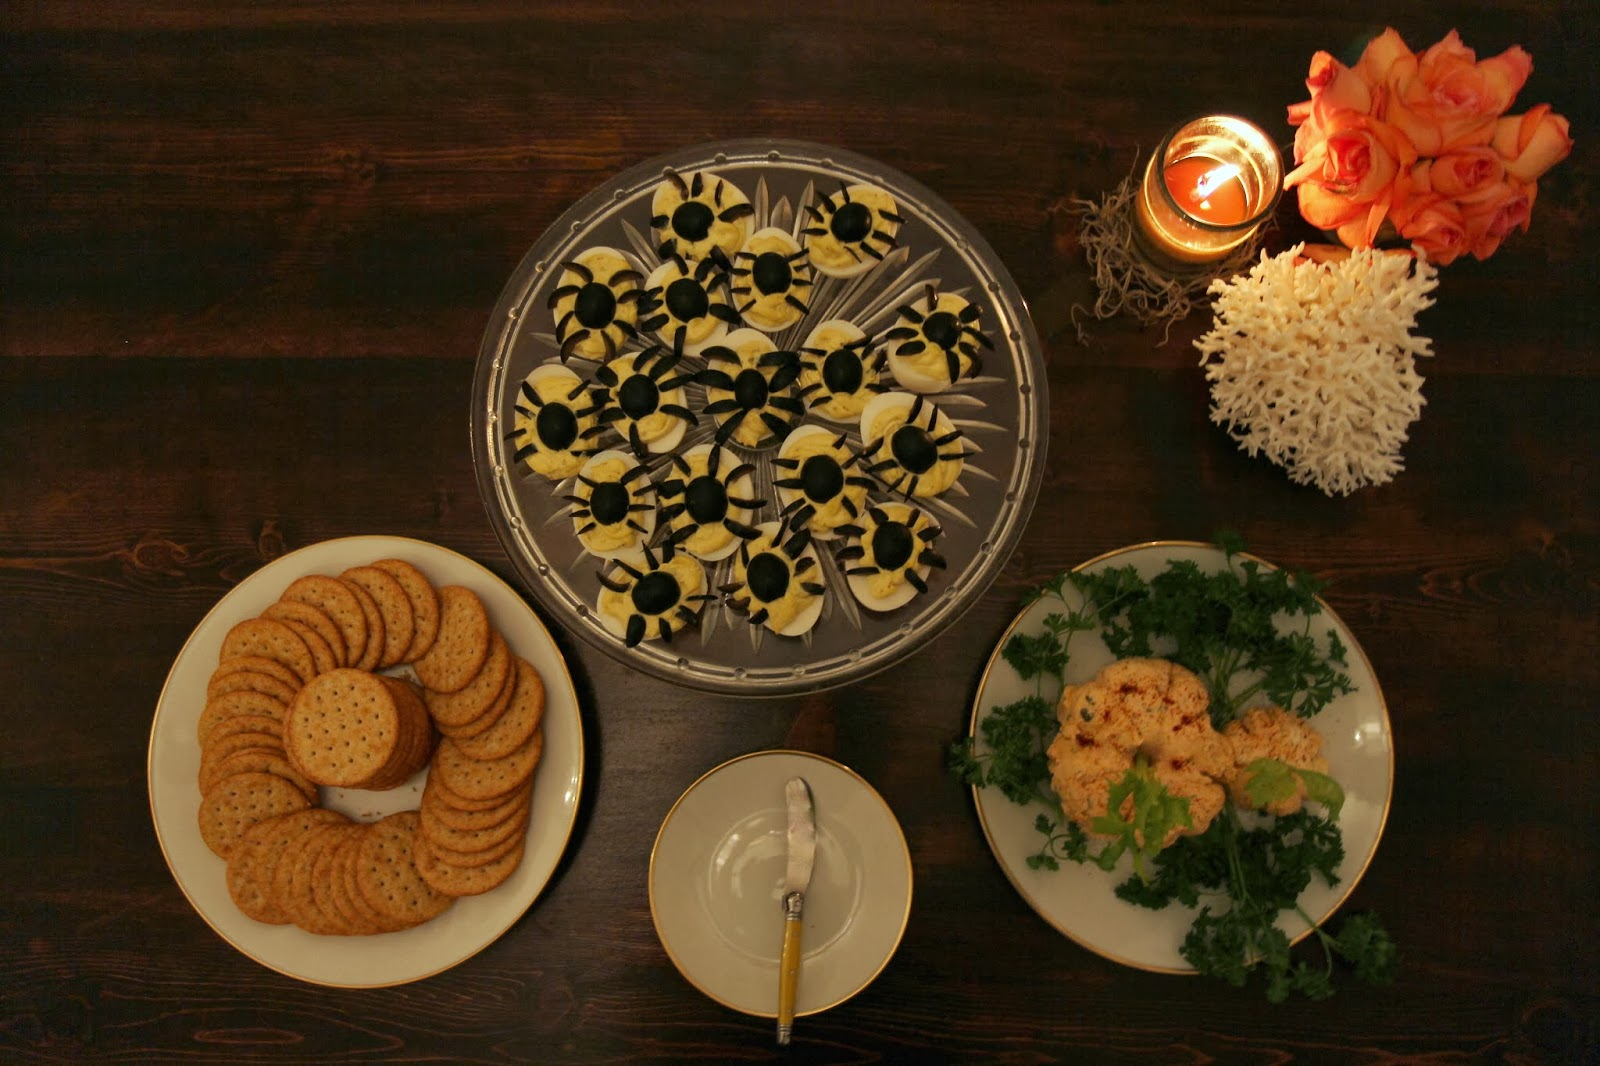 Deviled Eggs and Cheese Dish - Spooky Glam Halloween Party